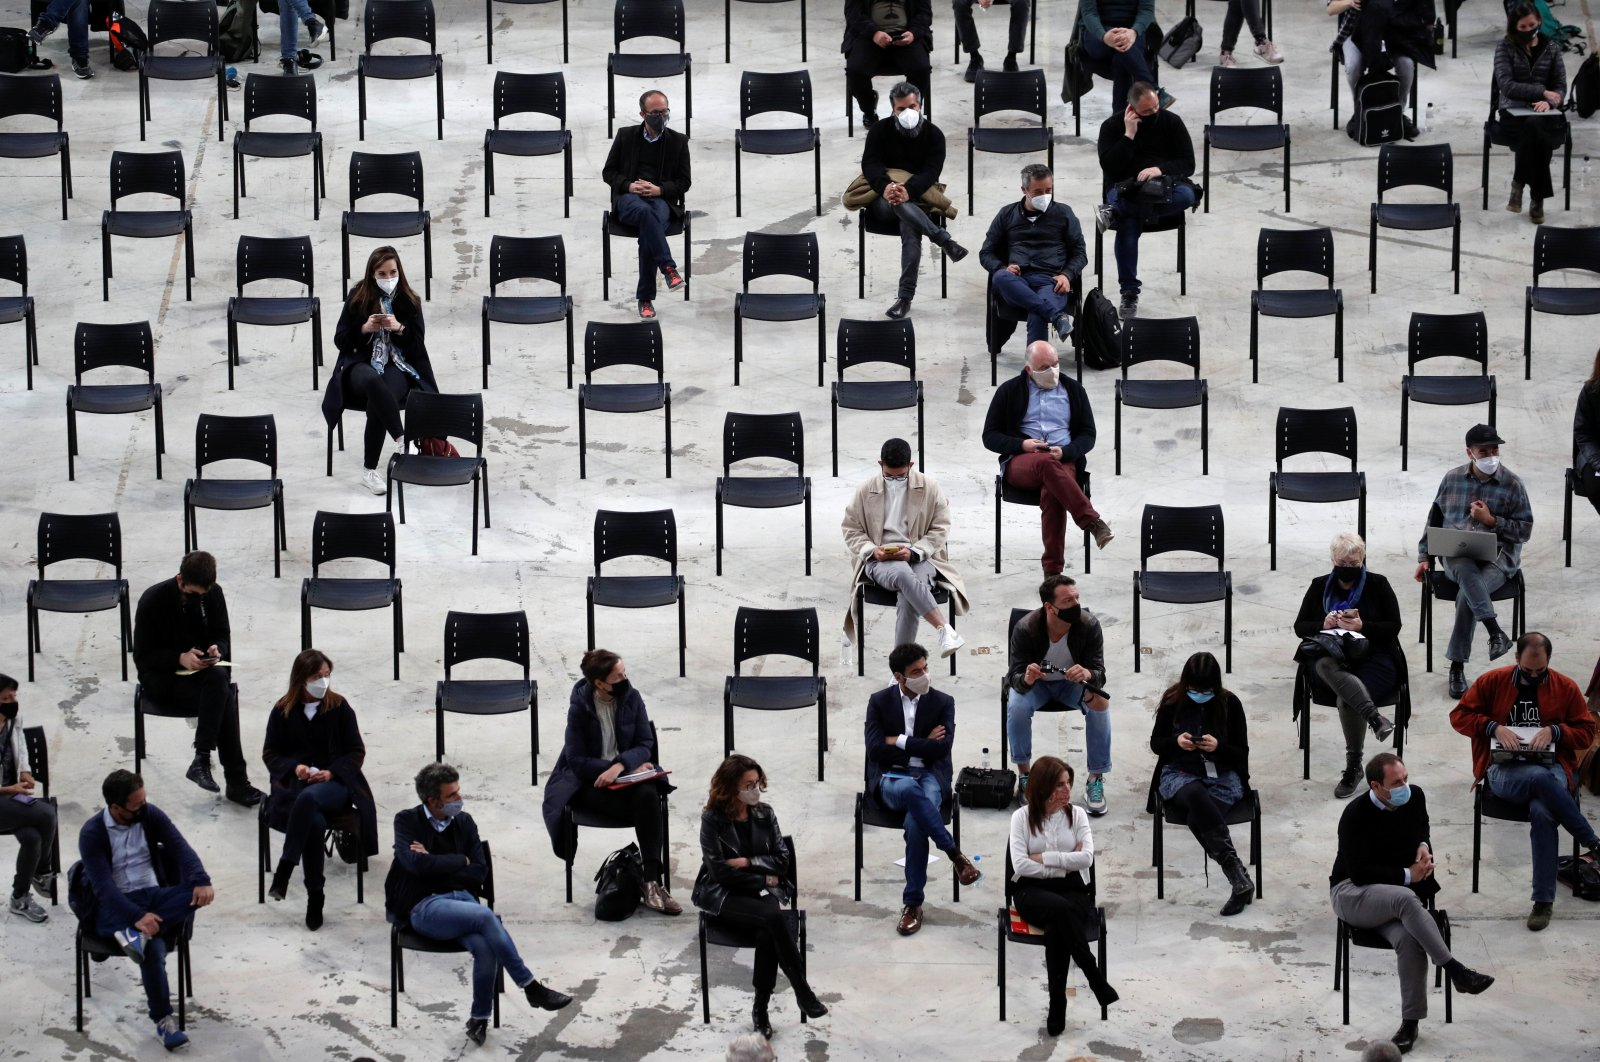 Members of the media attend a news conference held by the organizers of the concert of Spanish indie band Love of Lesbian celebrated in the same place on March 27, attended by 5,000 people who took rapid COVID-19 tests before the concert, in Barcelona, Spain, April 27, 2021. (Reuters Photo)